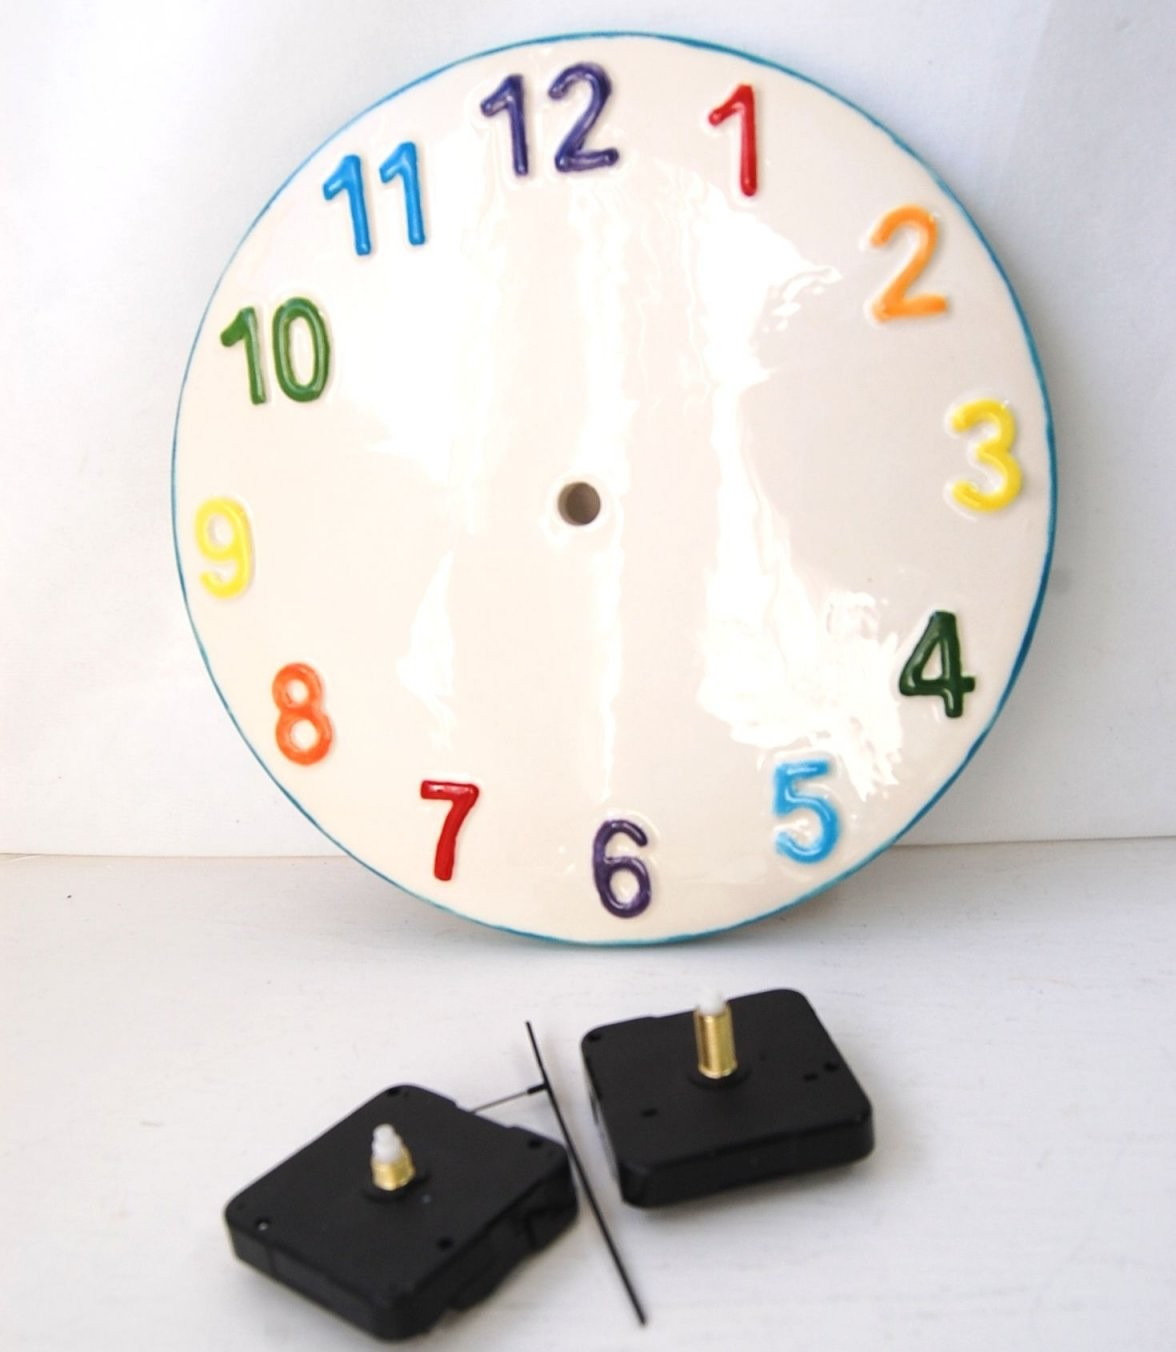 Make Your Own Clock Paint Your Own Designsartwork Onto Our Clock von Make Your Own Clock Photo